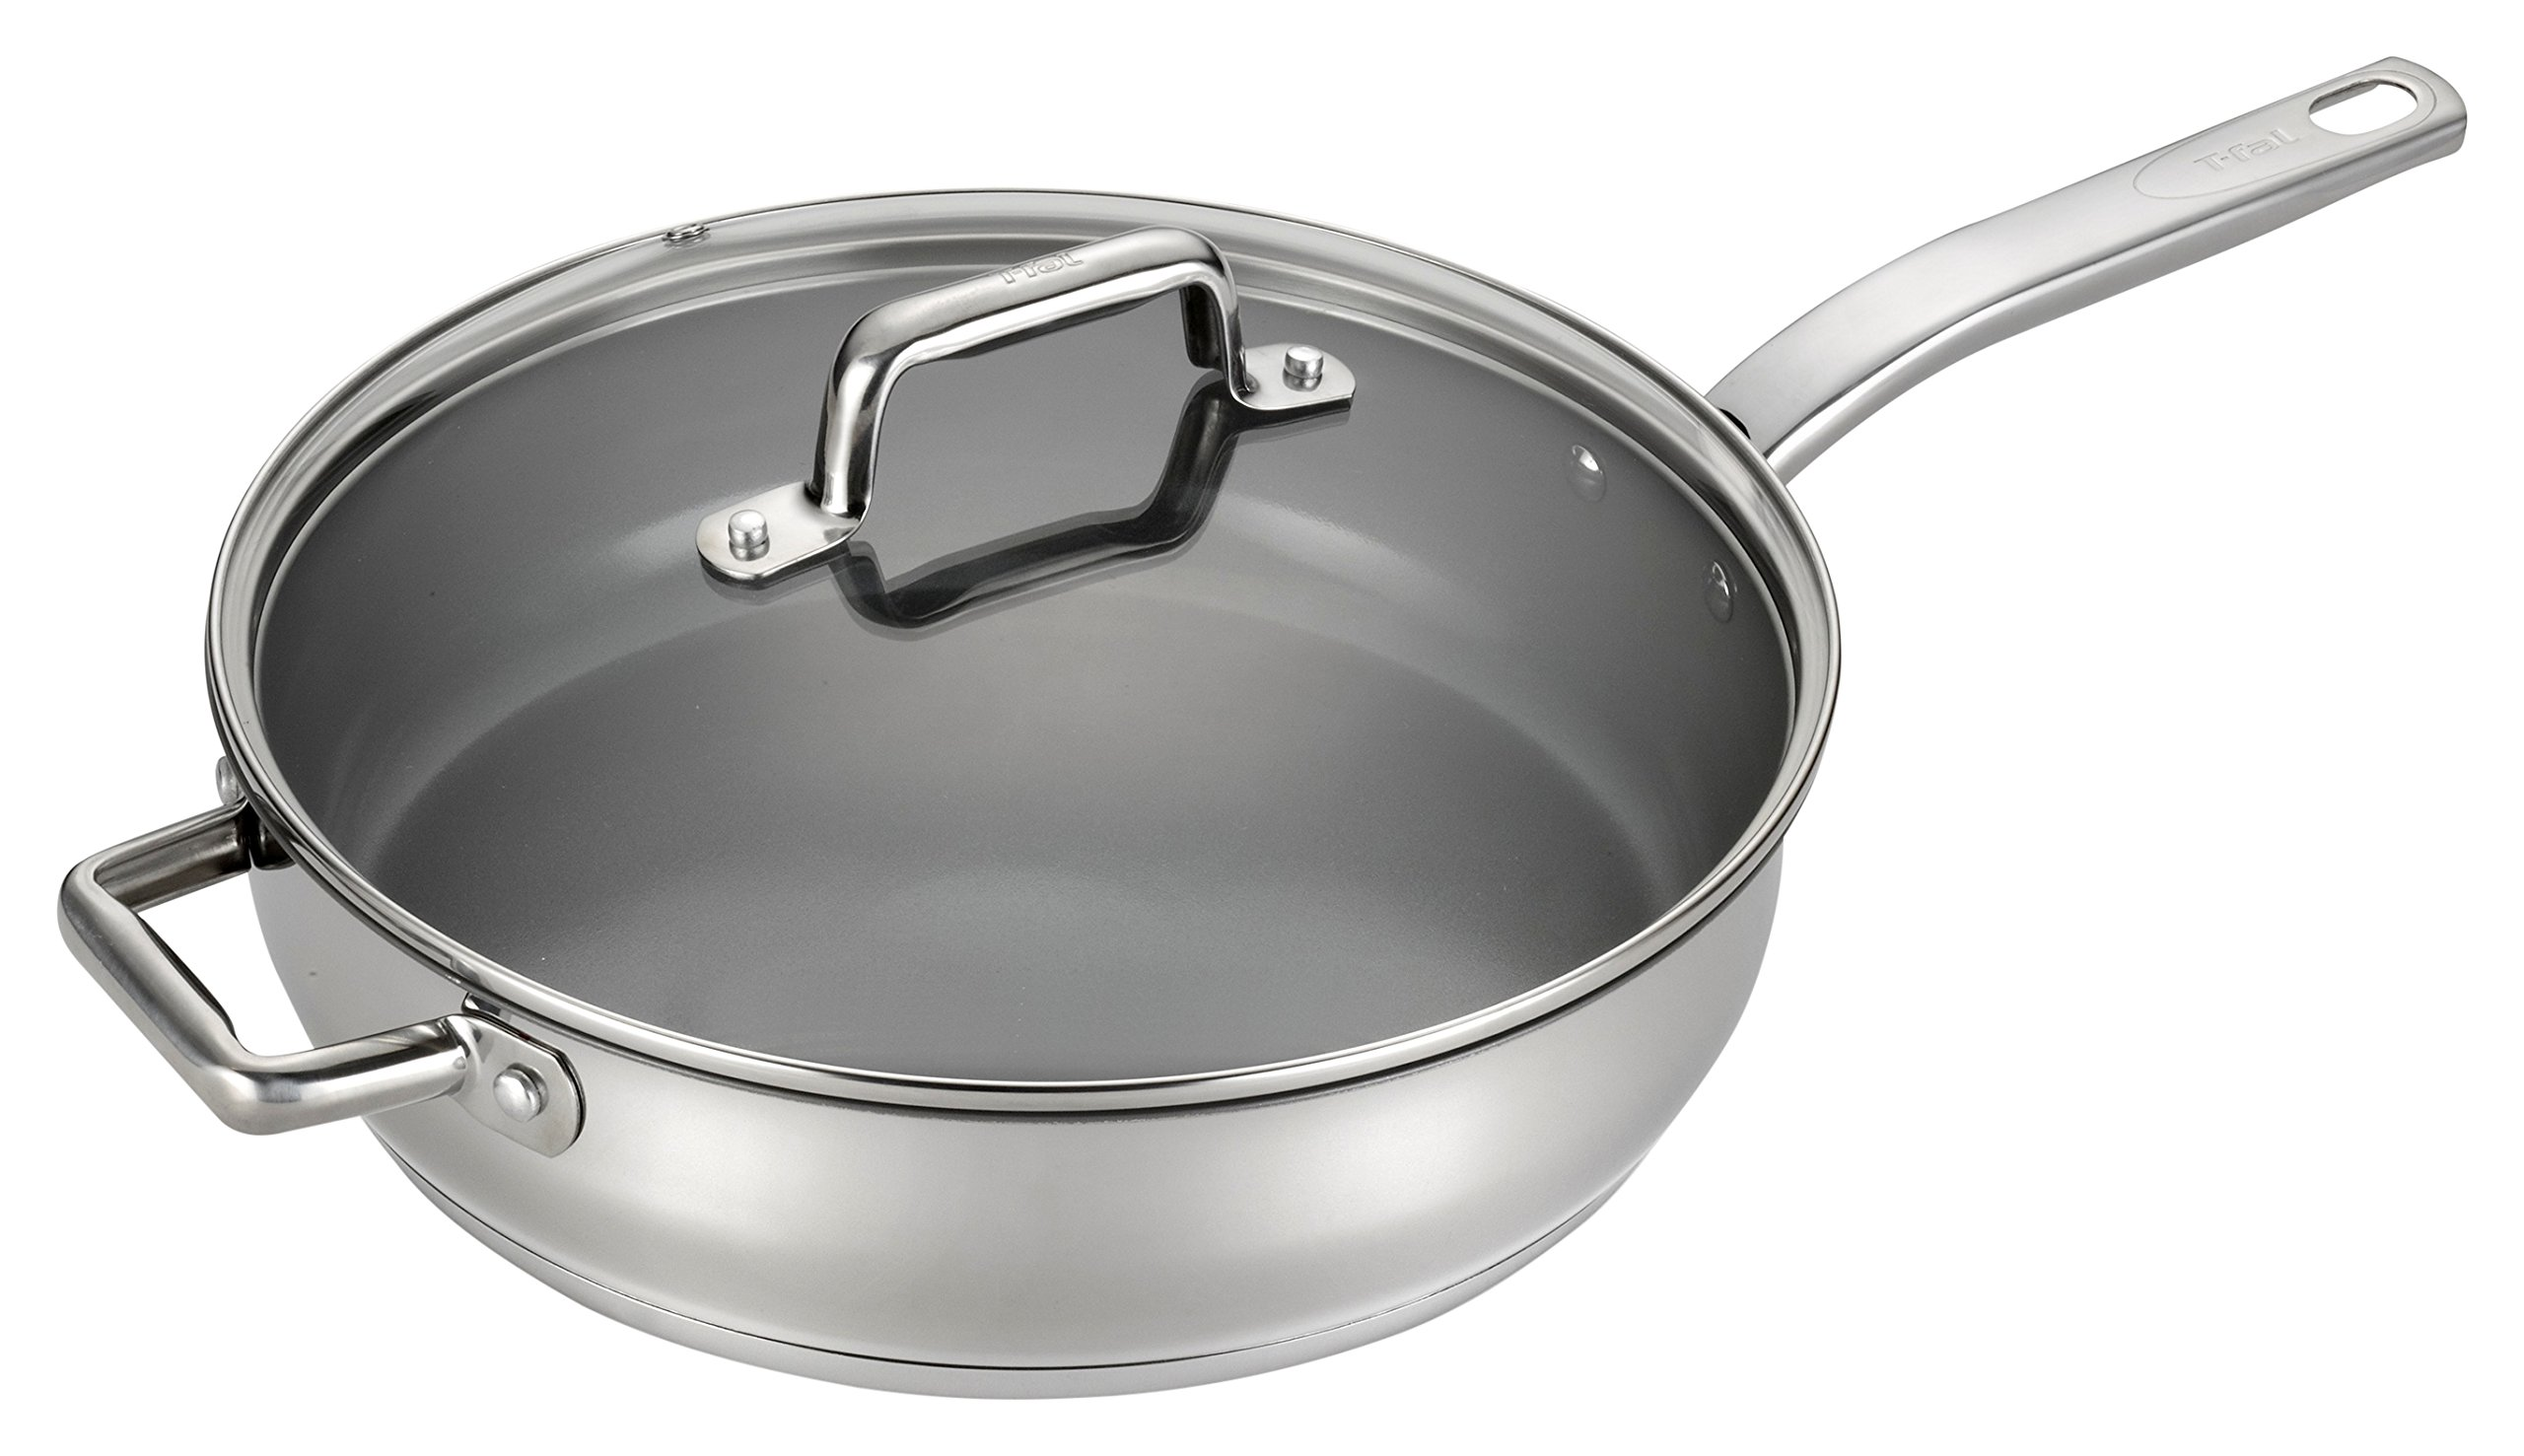 T-fal C71882 Precision Stainless Steel Nonstick Ceramic Coating PTFE PFOA and Cadmium Free Scratch Resistant Dishwasher Safe Oven Safe Jumbo Cooker Saute Pan Fry Pan Cookware, 5-Quart, Silver